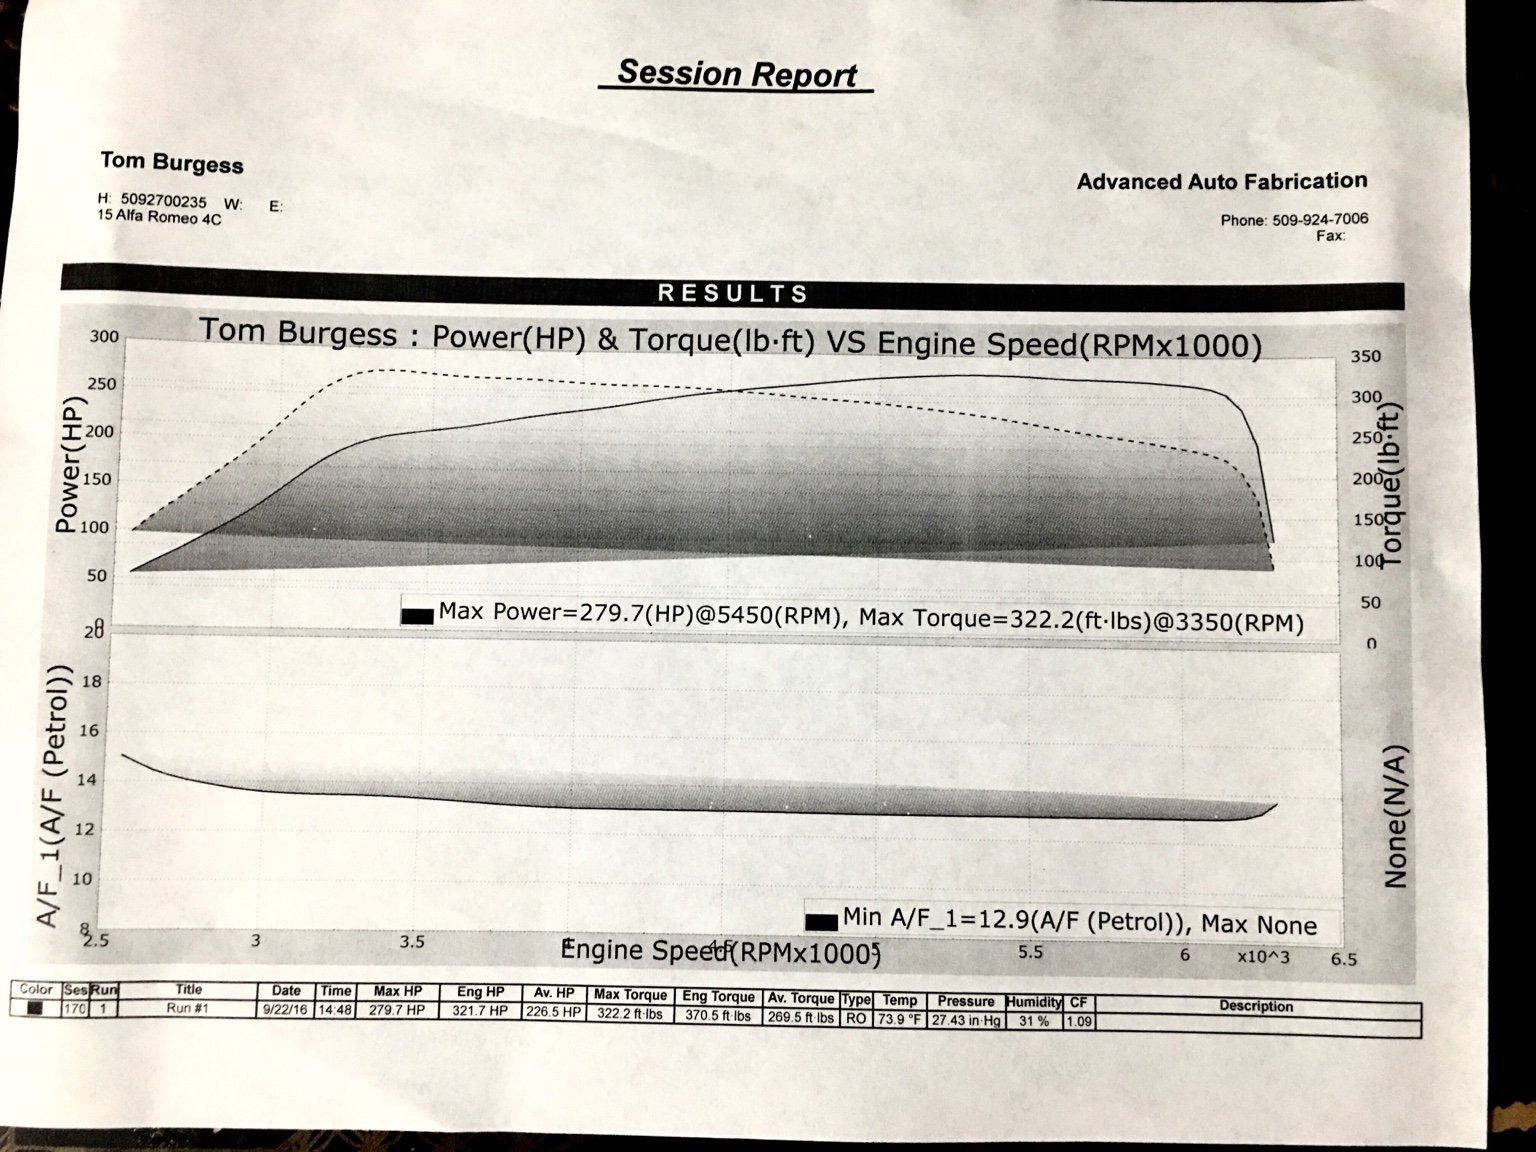 Dyno Modded 4c Results